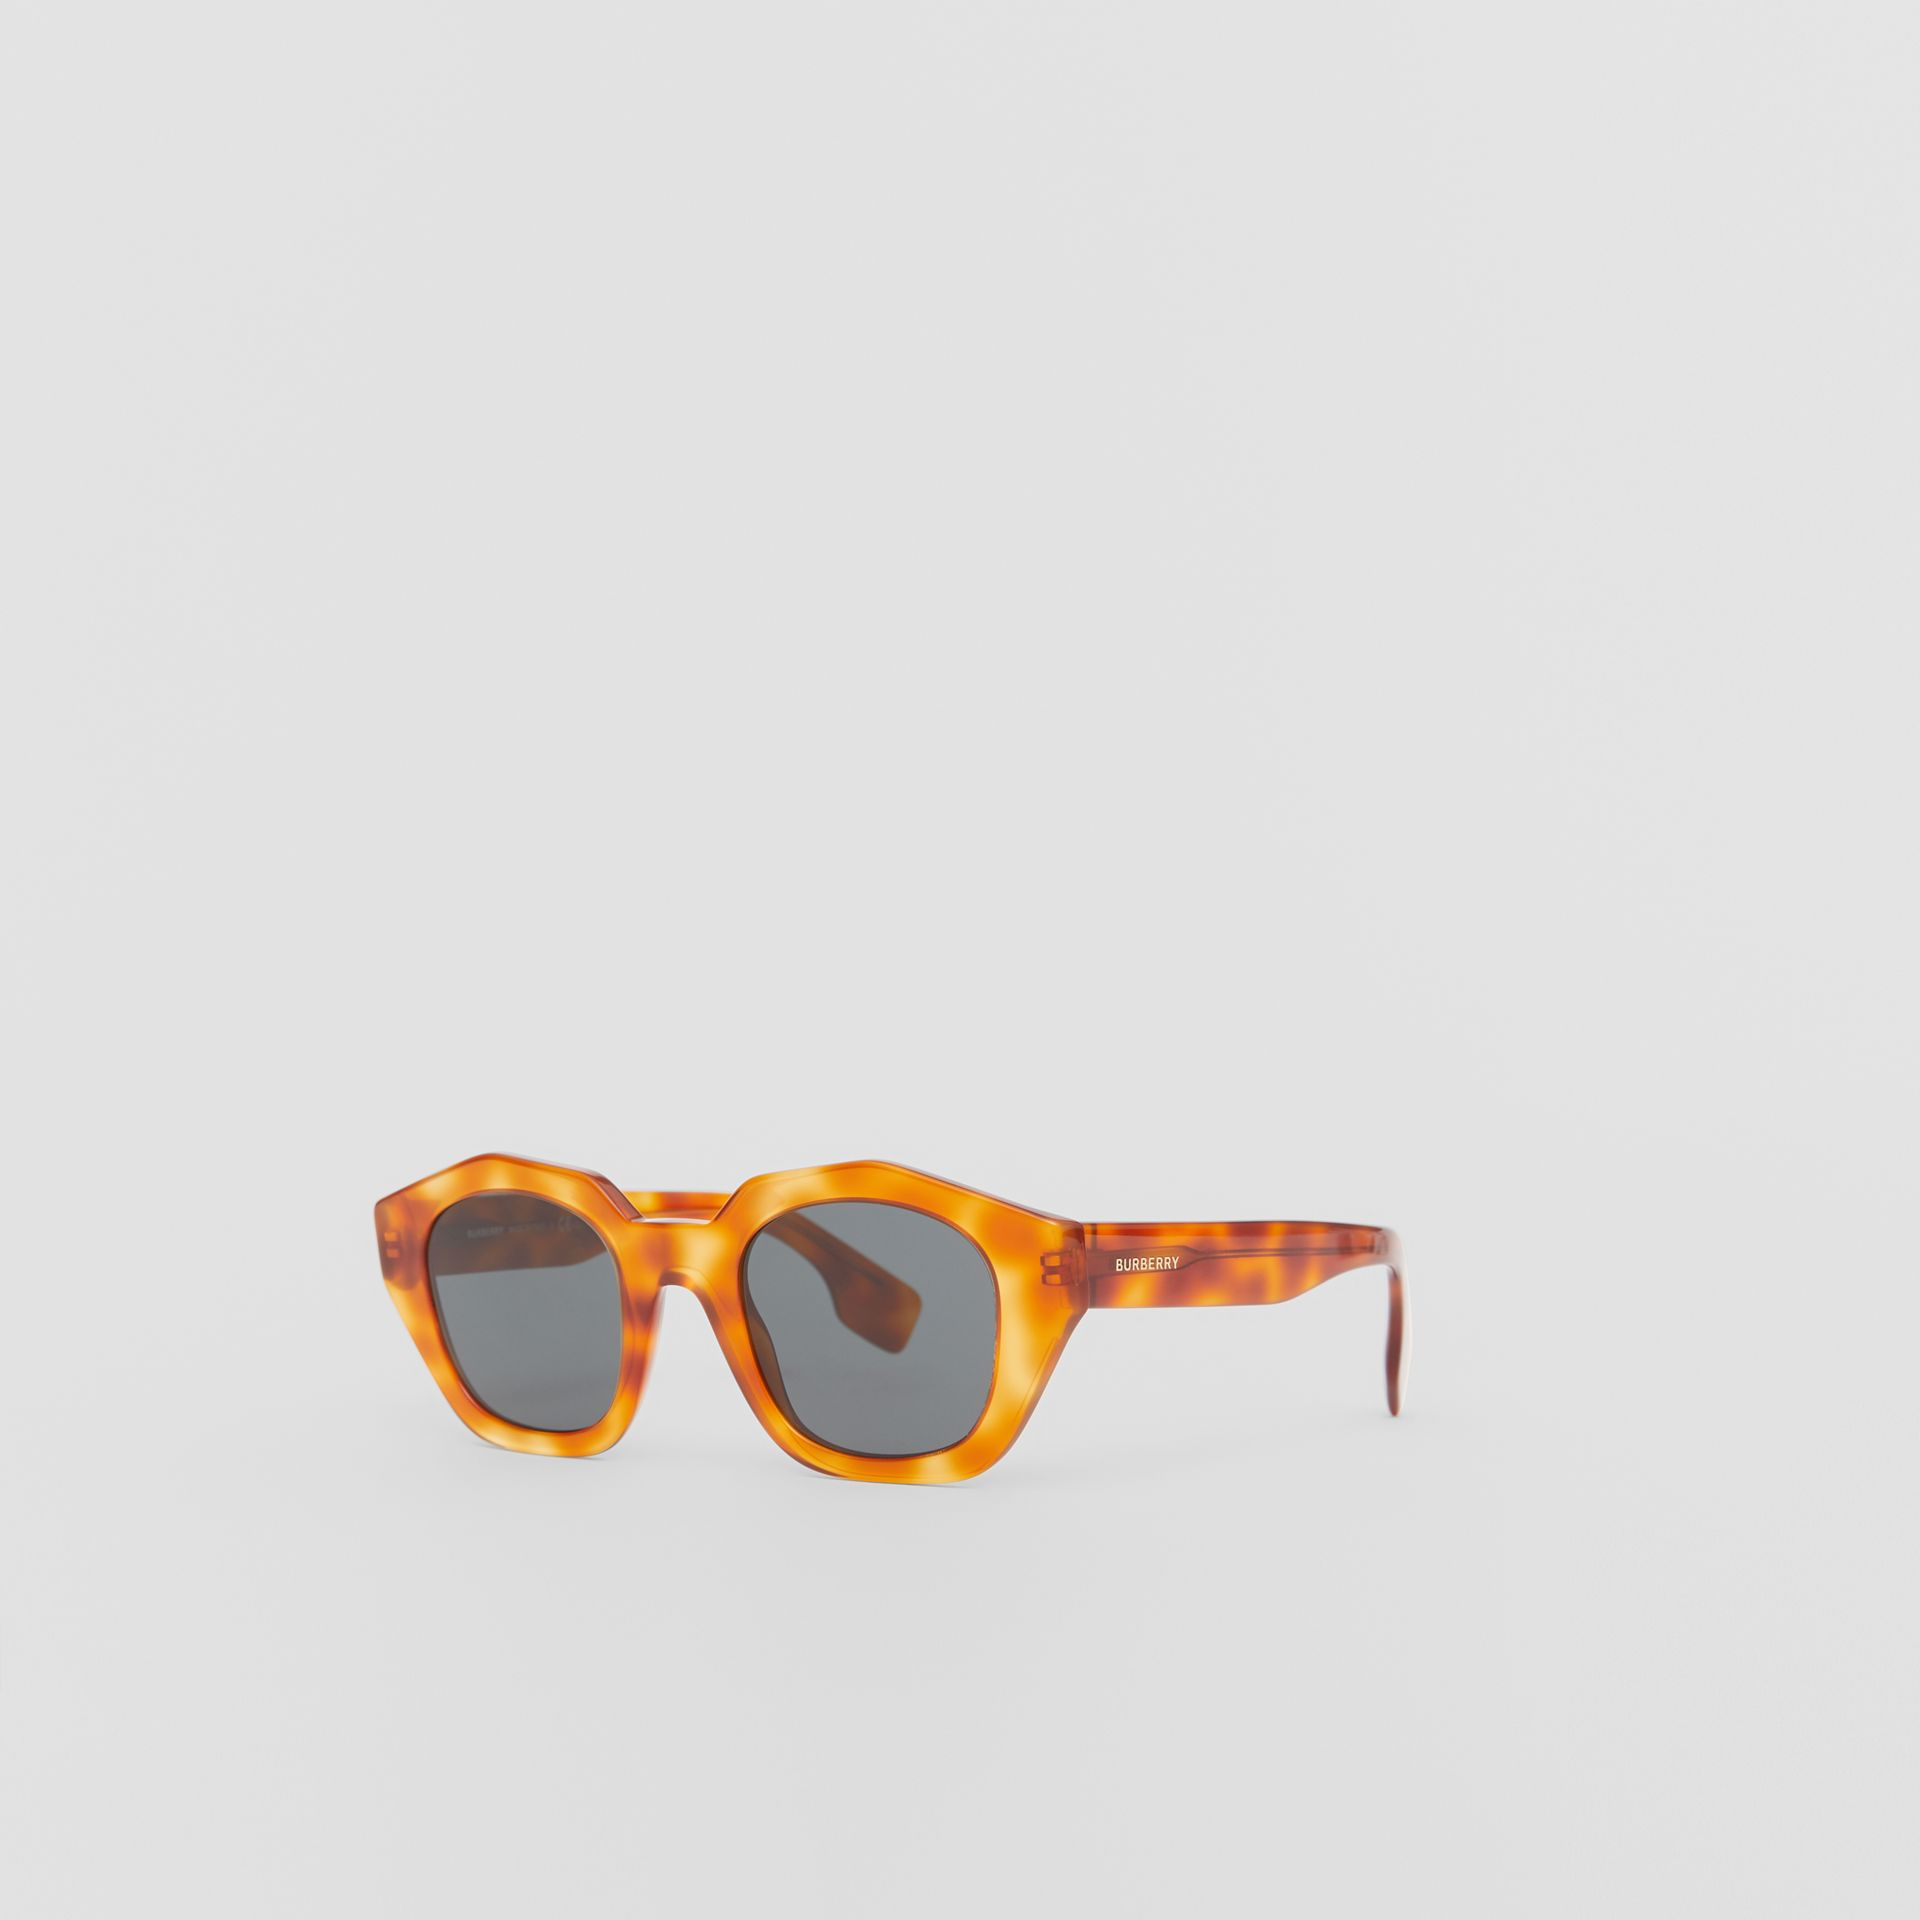 Geometric Frame Sunglasses in Tortoiseshell Amber - Women | Burberry Hong Kong - gallery image 5